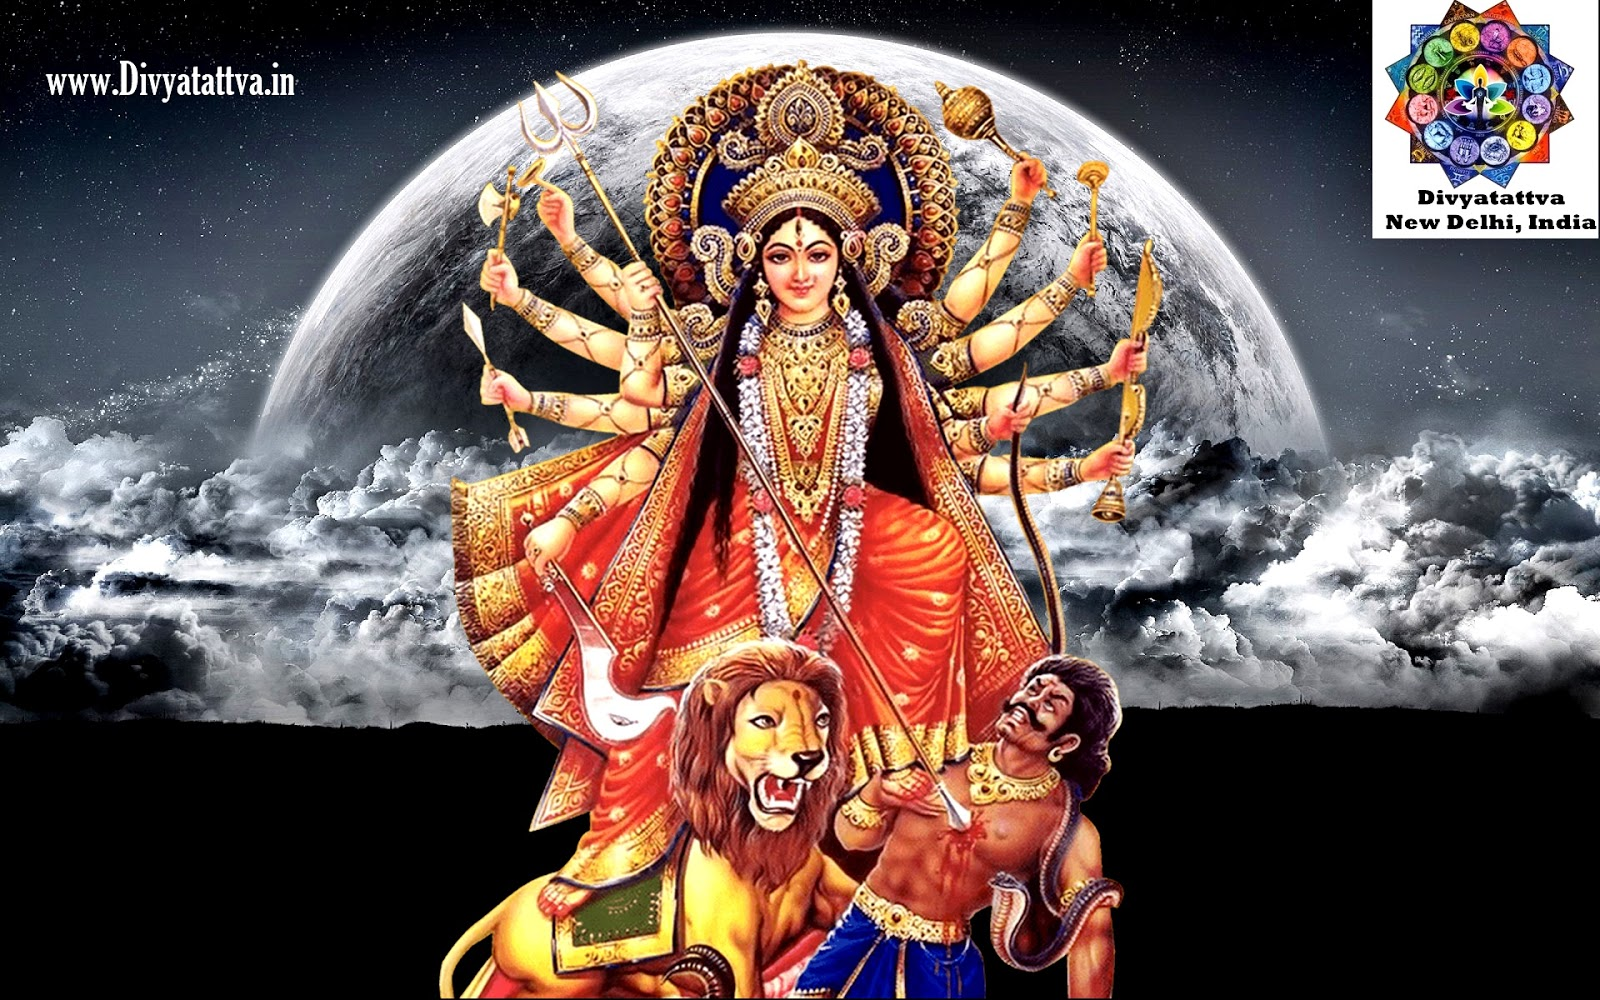 durga devi hindu goddess hd wallpaper images bckground mobile phone smartphone laptops computer www.divyatattva.in